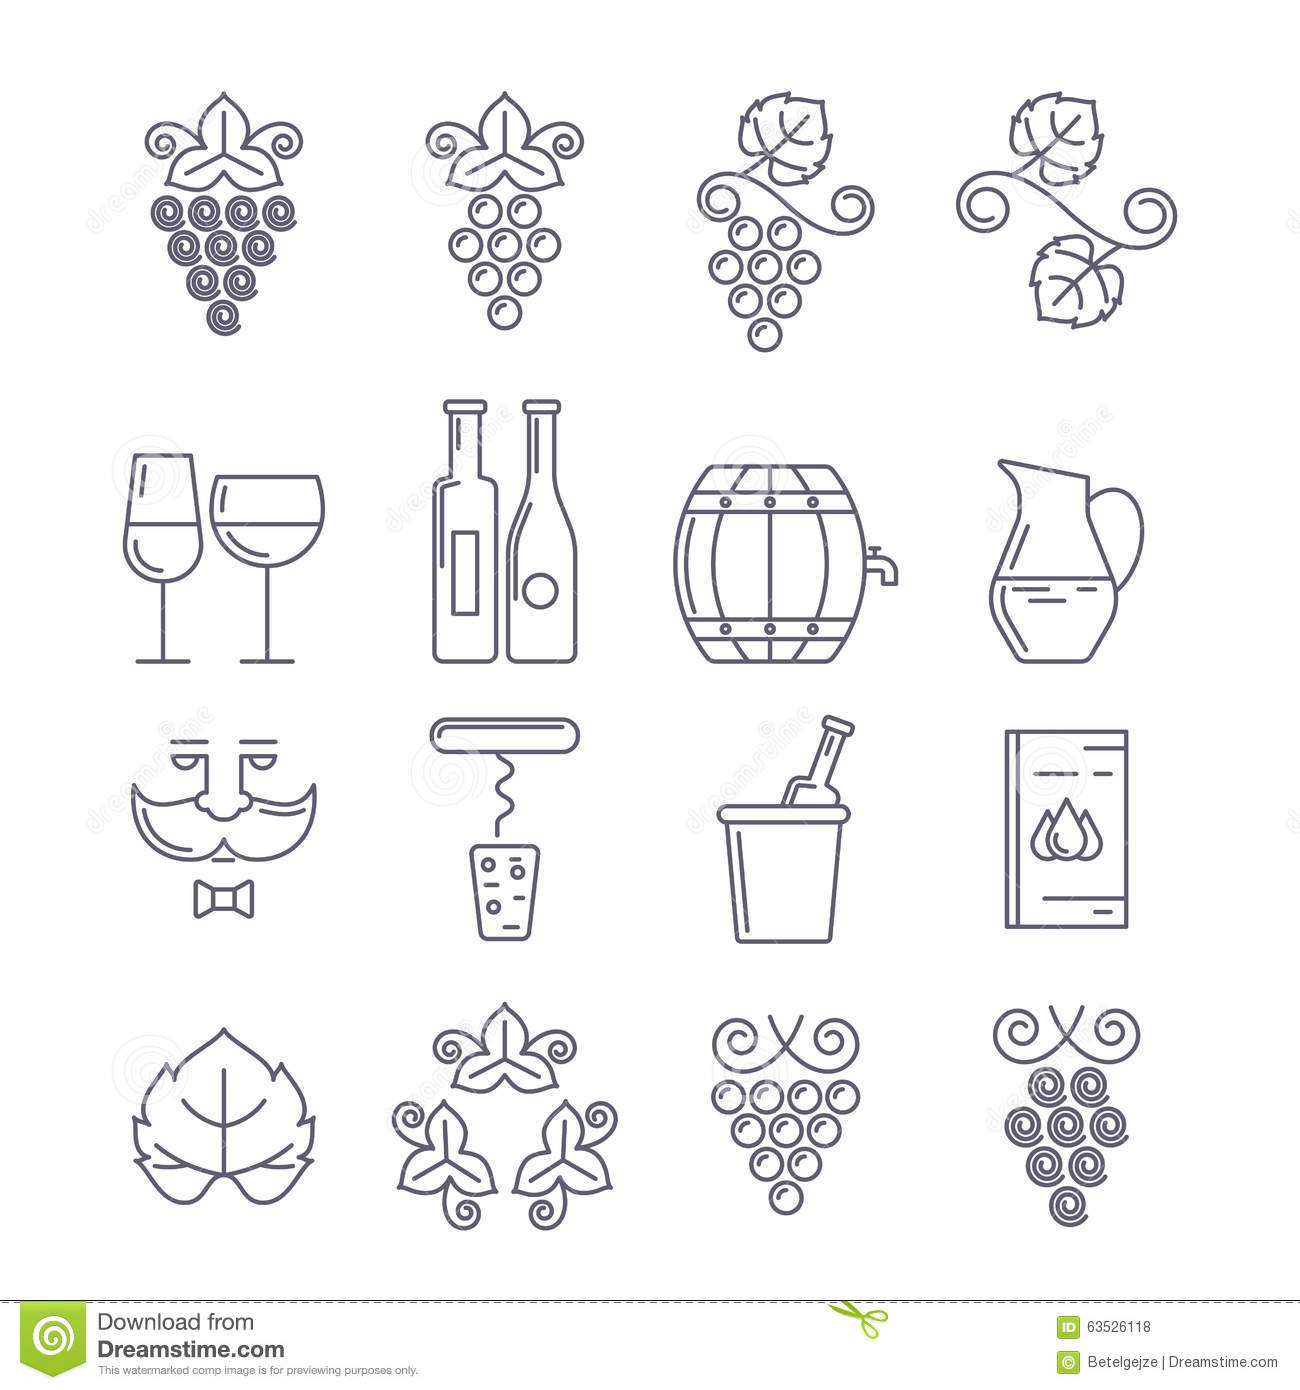 Helmet logo medieval knight antique vintage symbol engraved hand wine bottle glass grape vine and leaf food and drink line ill royalty biocorpaavc Gallery